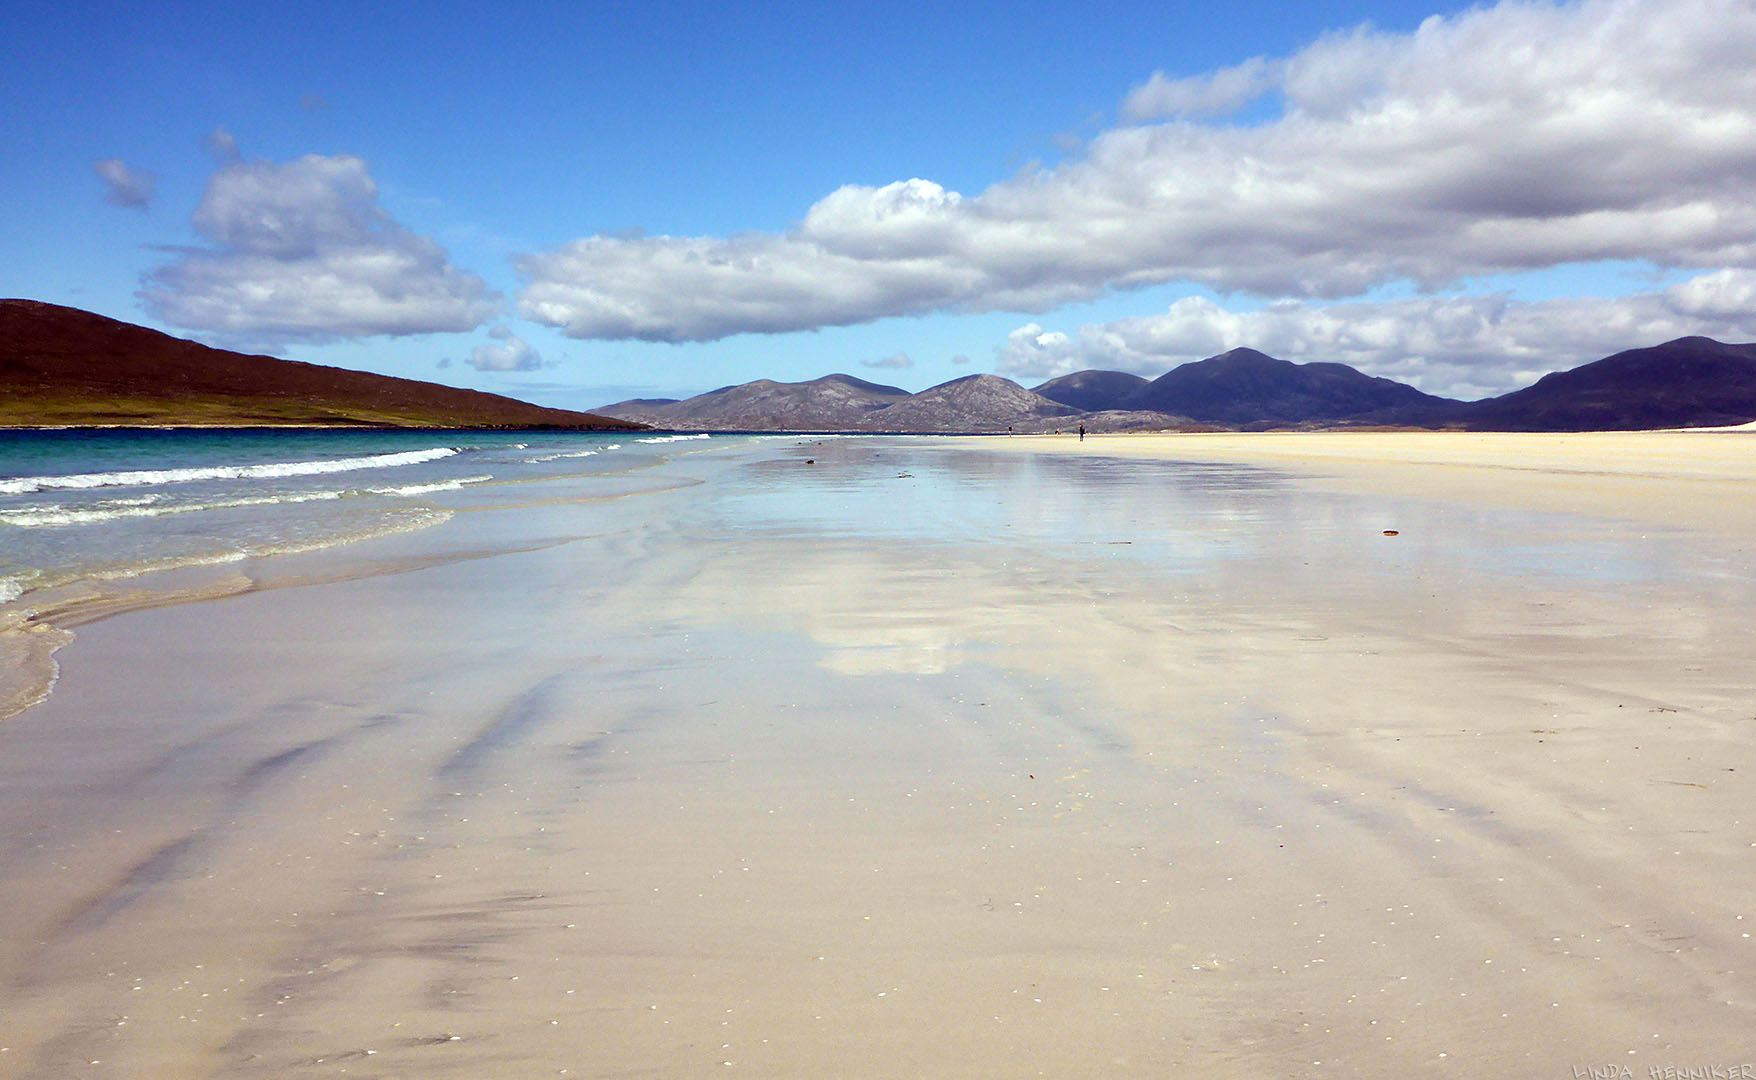 32 Luskentyre beach, tide out